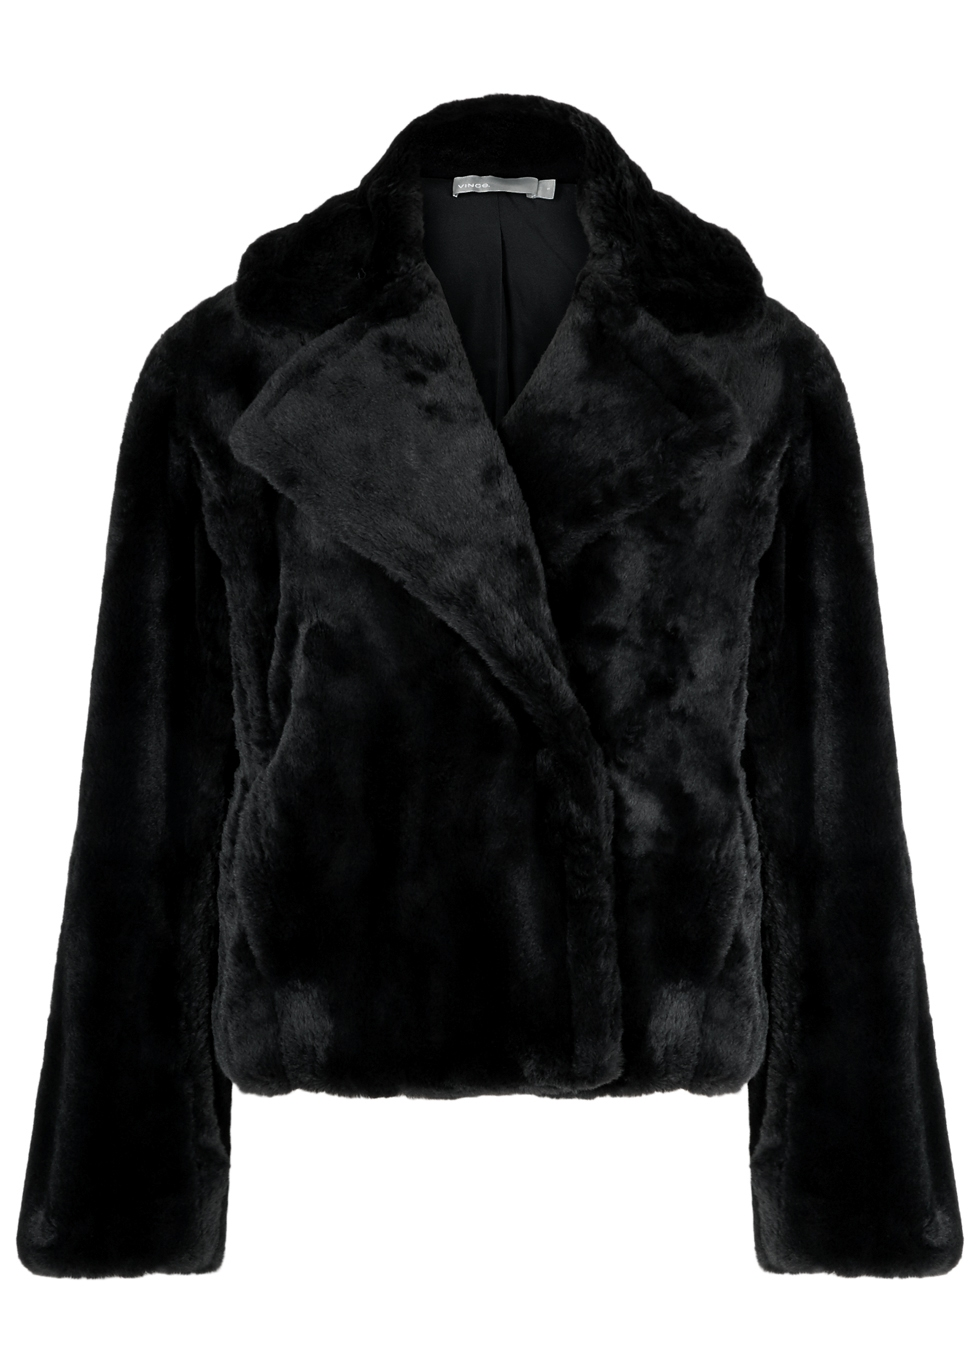 VINCE BLACK FAUX FUR JACKET